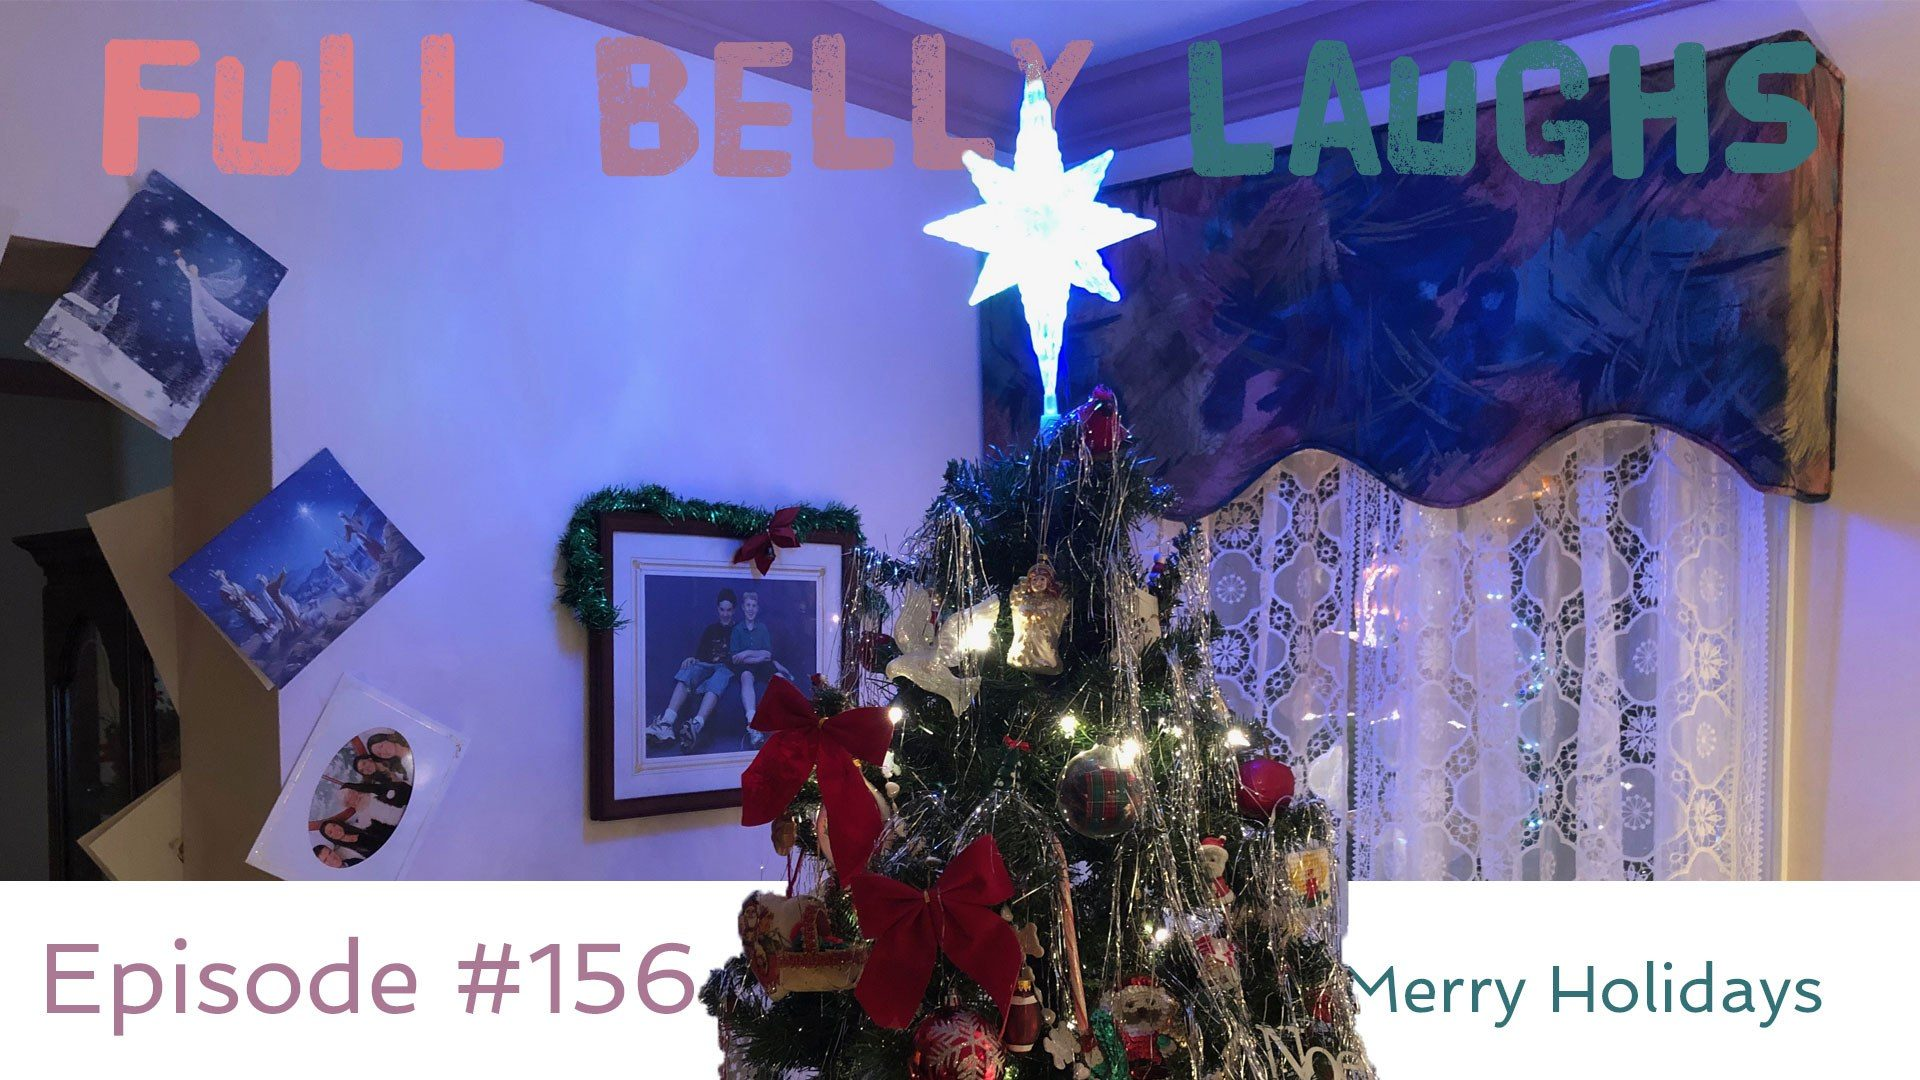 full belly laughs podcast episode 156 merry holidays christmas audio artwork